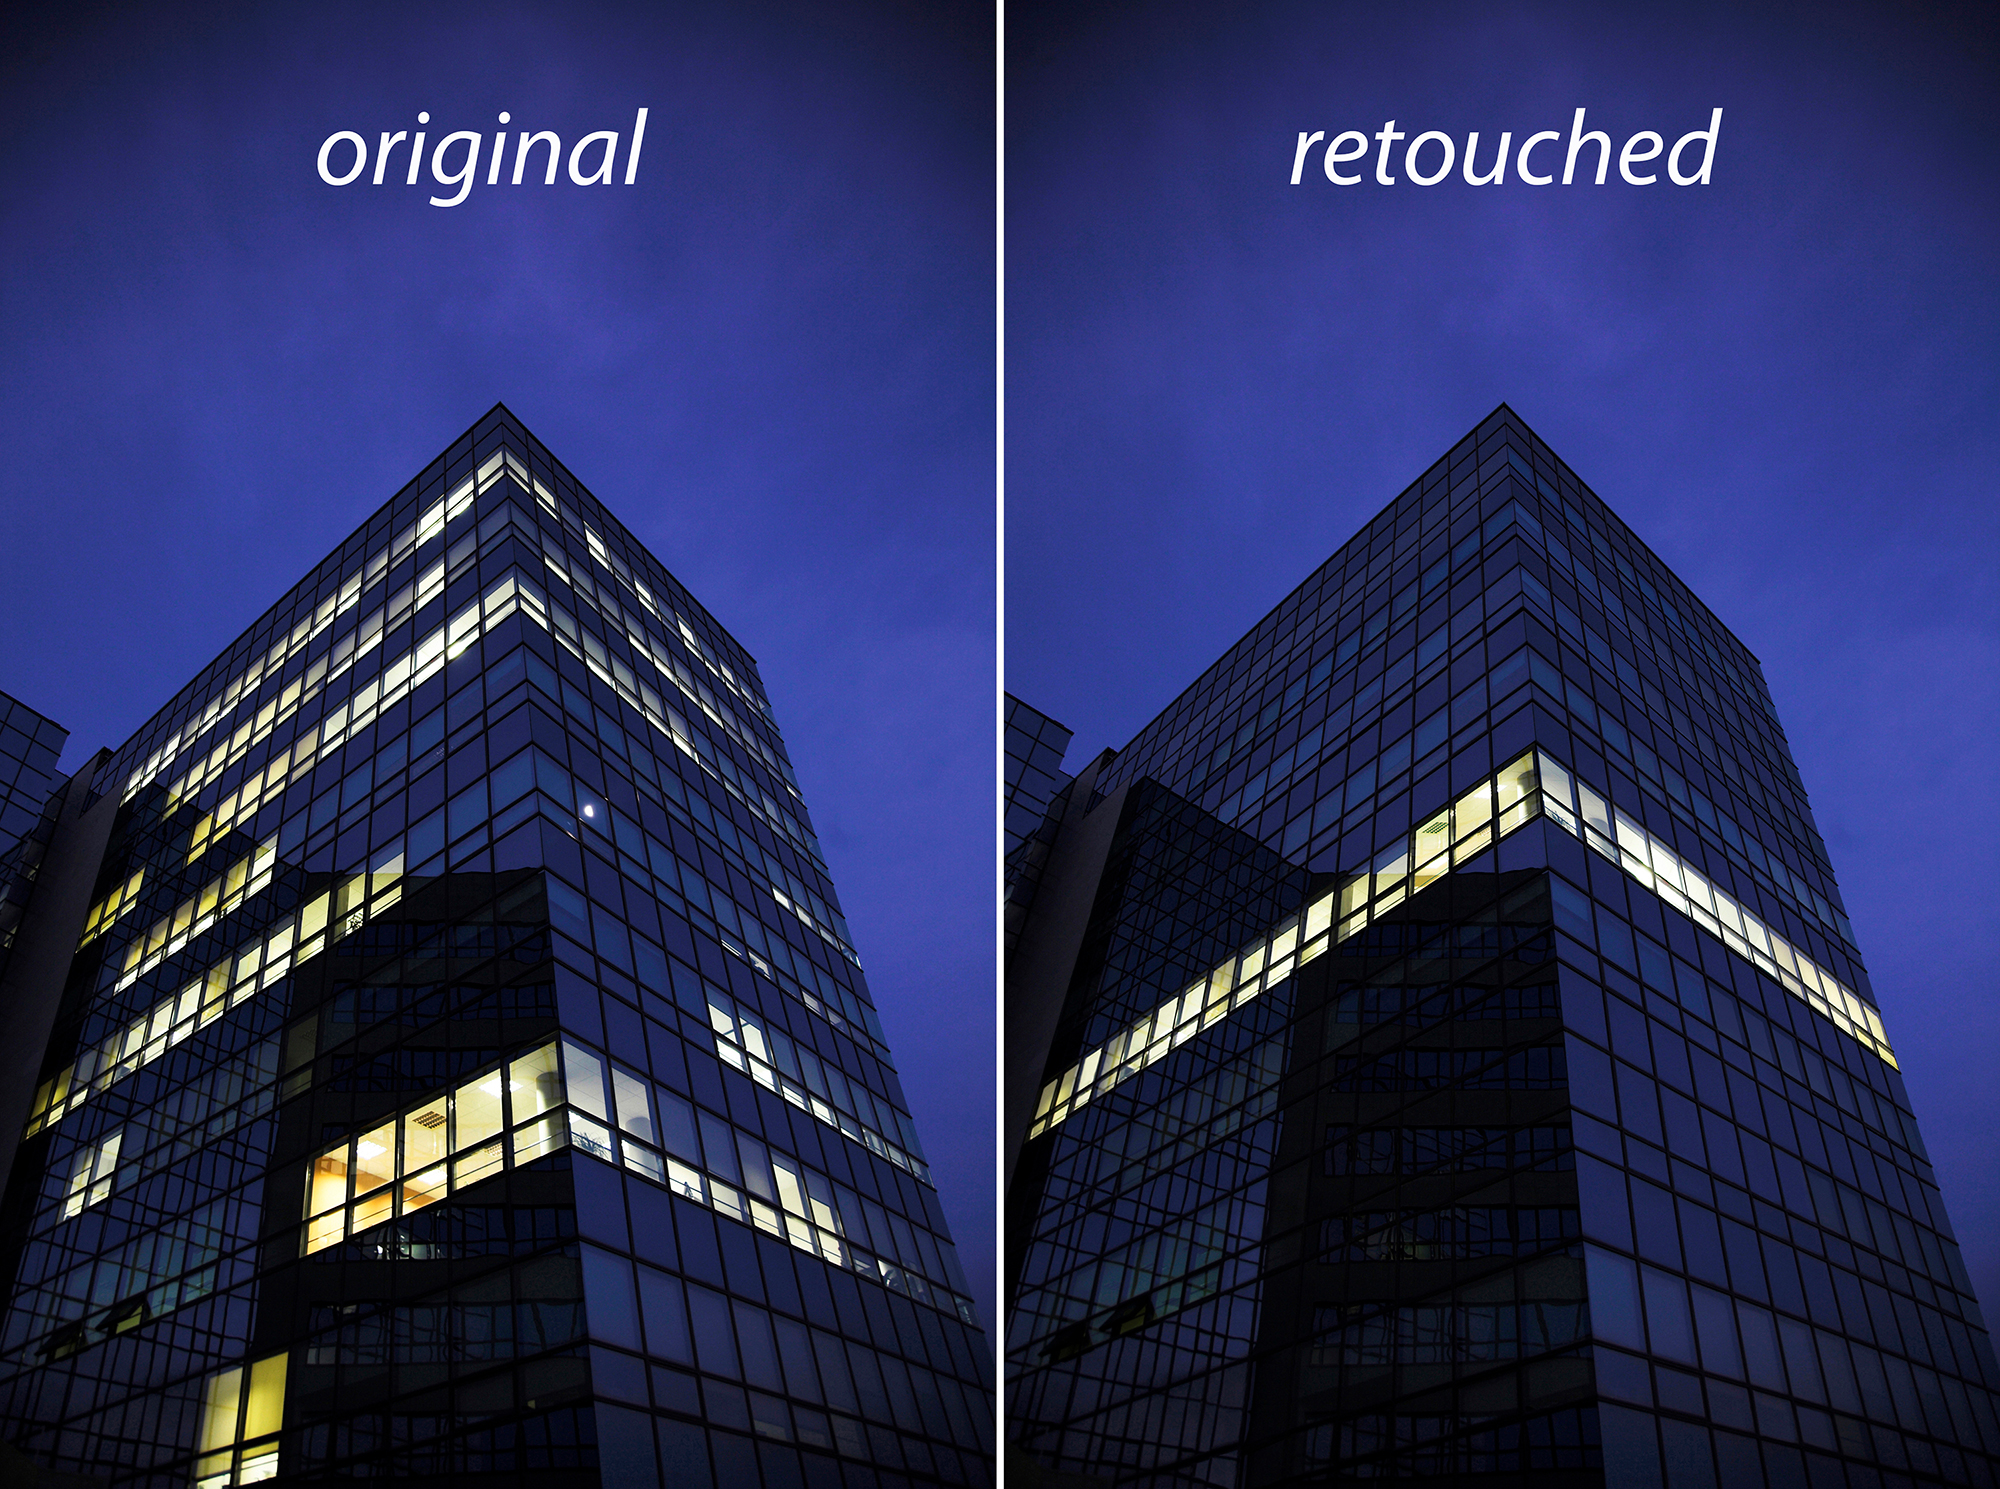 retouching-an-office-building-by-philip-lane-photography